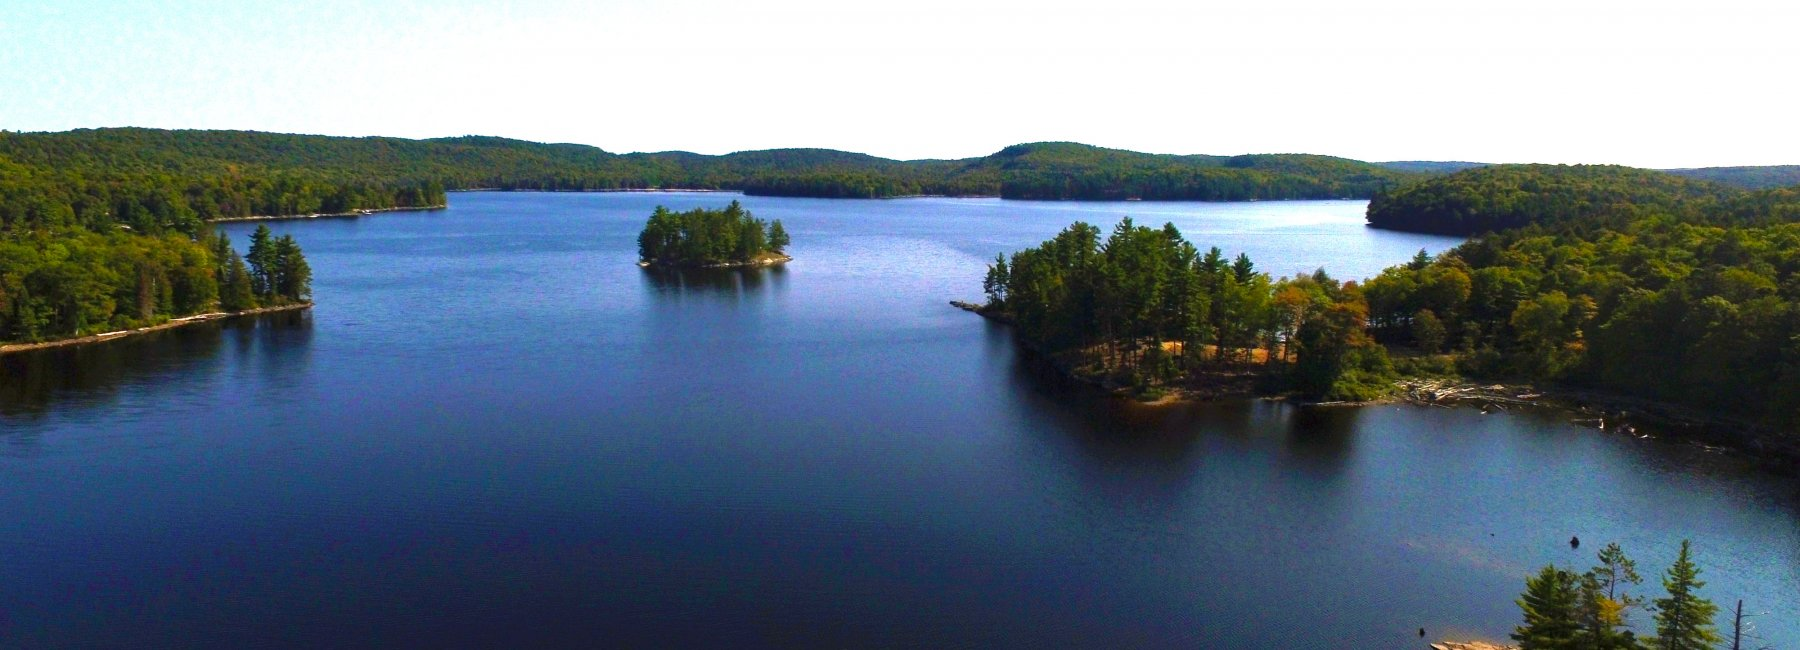 Lot 11 - Lone Wolf Drive, Haliburton